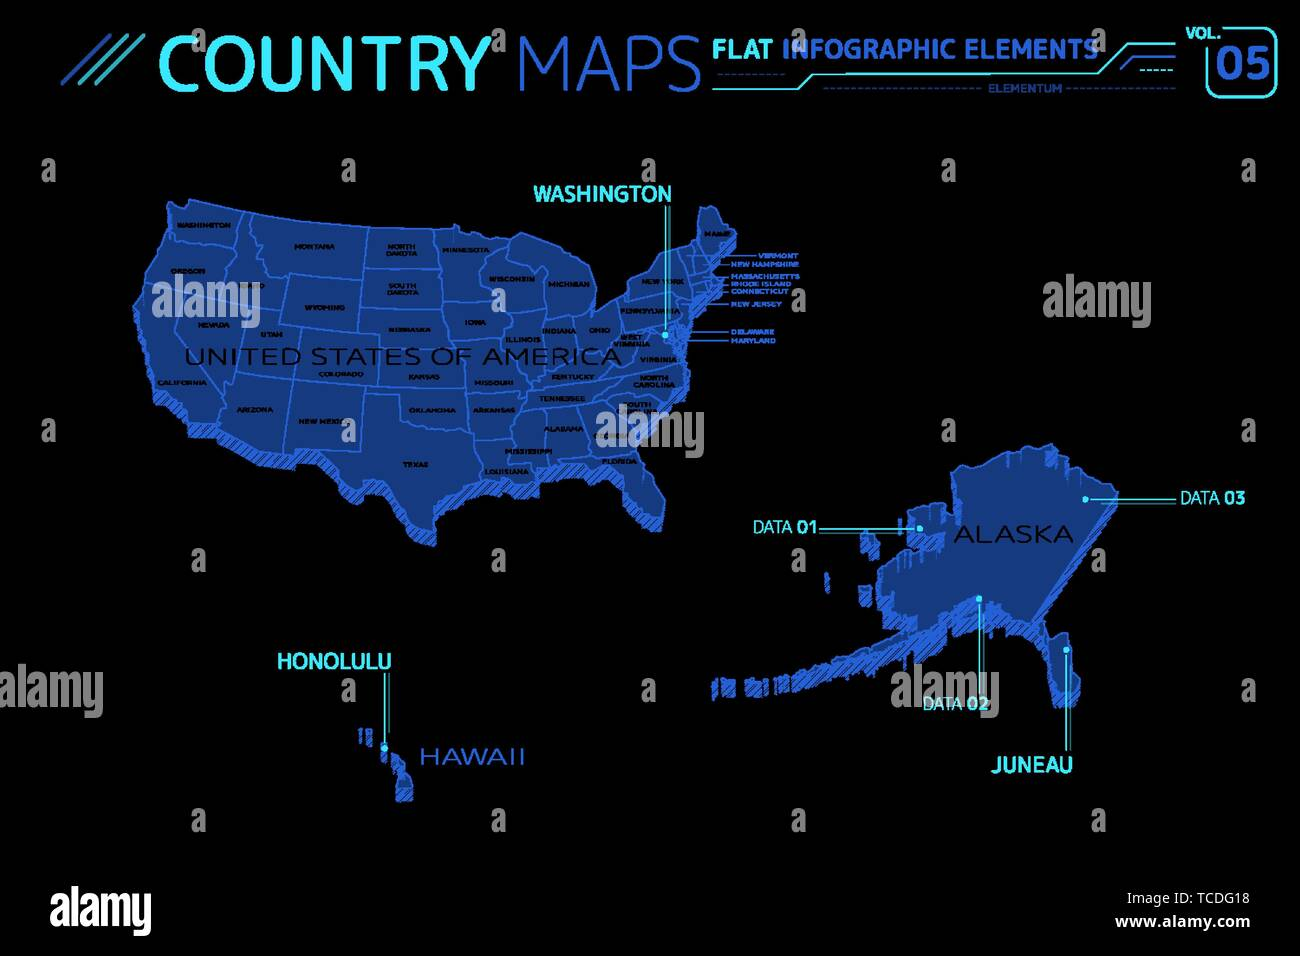 Map Of California And Hawaii.United States Map Alaska And Hawaii Stock Photos United States Map